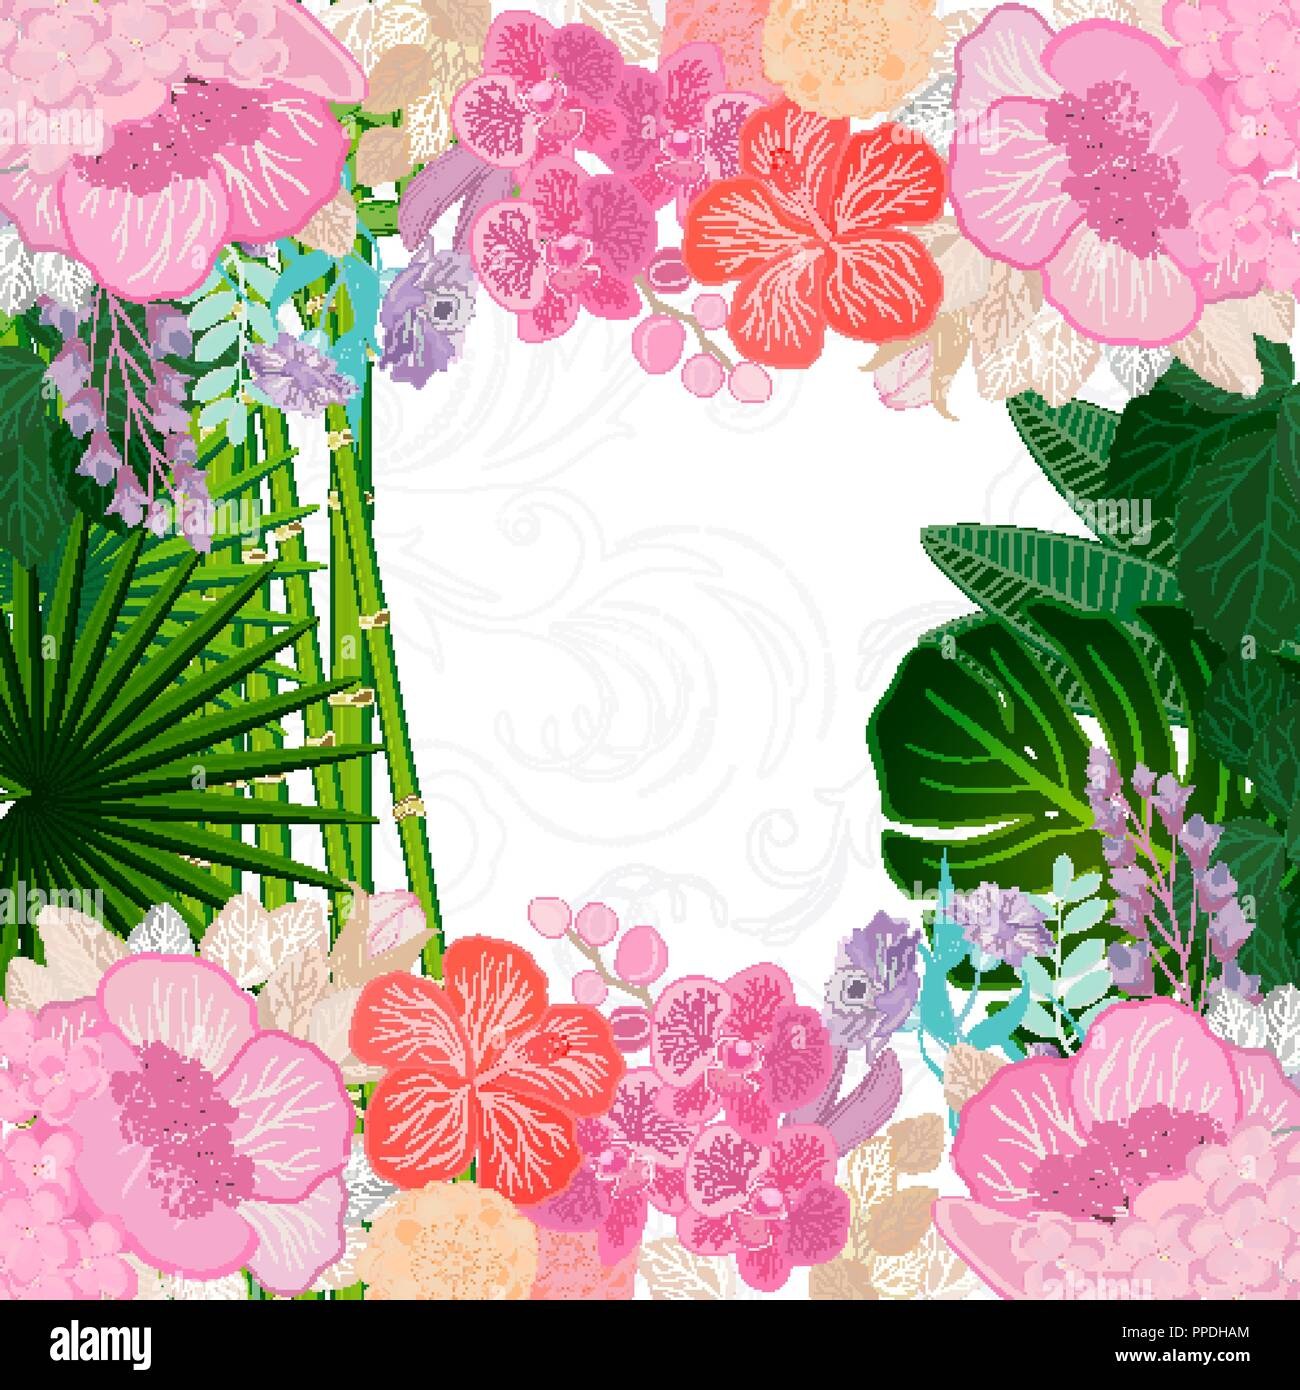 Watercolor Colors Flower Background Spring Nature Design